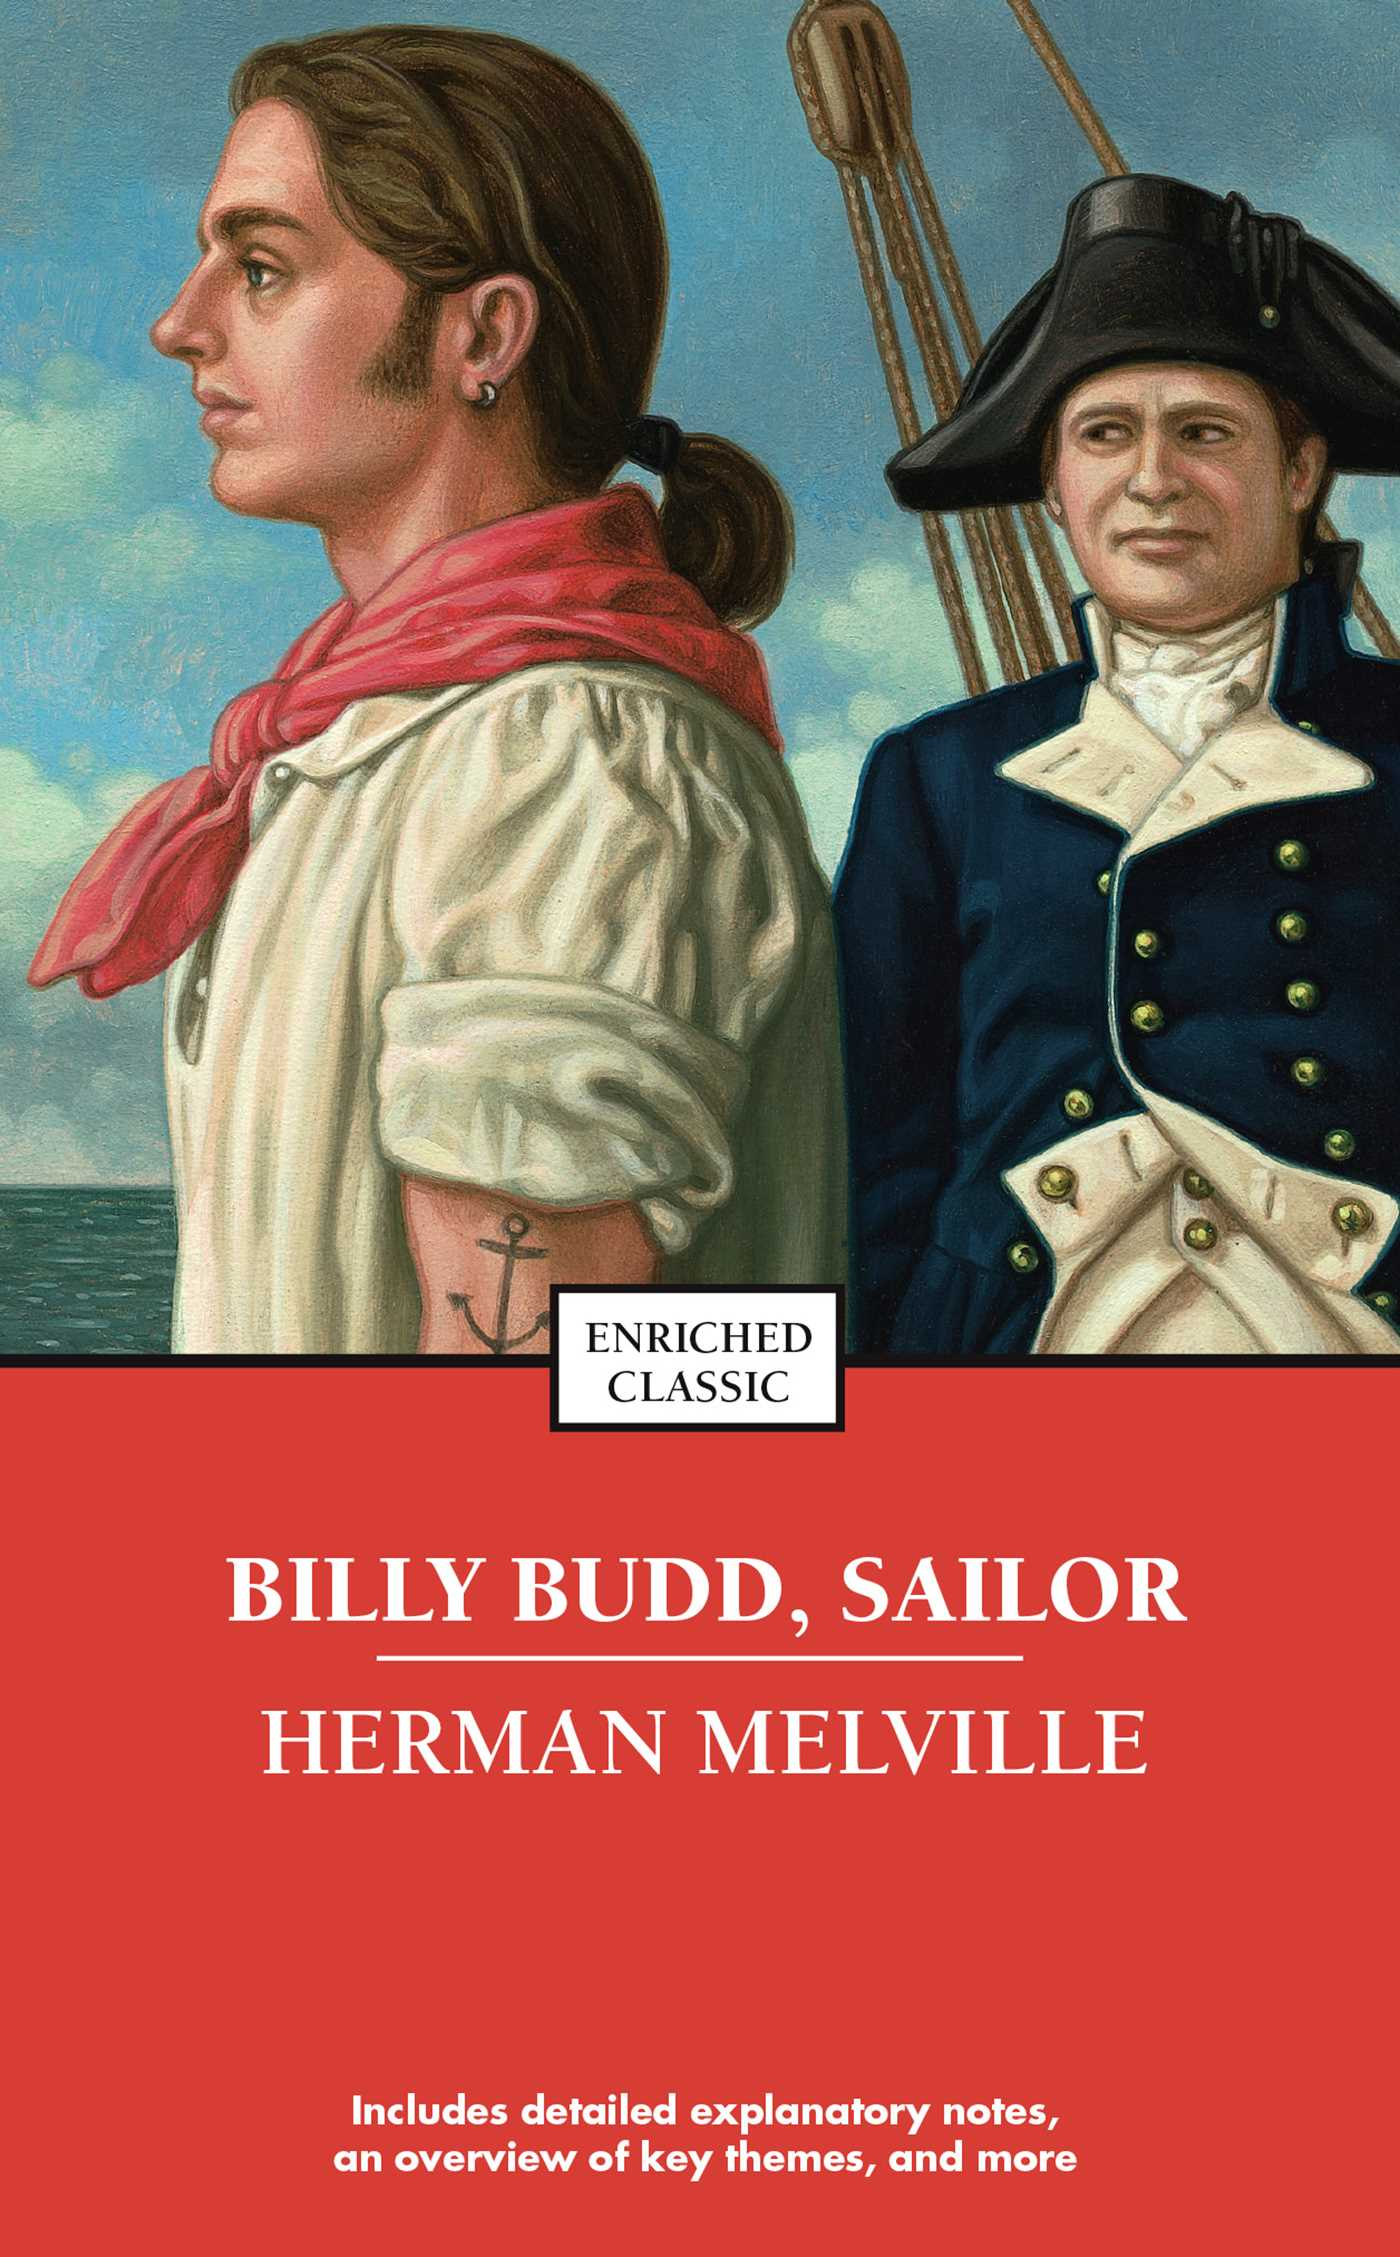 a literary analysis of billy budd by herman melville - herman melville's billy budd as allegory of good versus evil herman melville's billy budd relates an allegory of innocence versus evil by - a comparison/contrast analysis of billy budd and bartleby several comparisons and contrasts can be made concerning the two stories, billy budd.